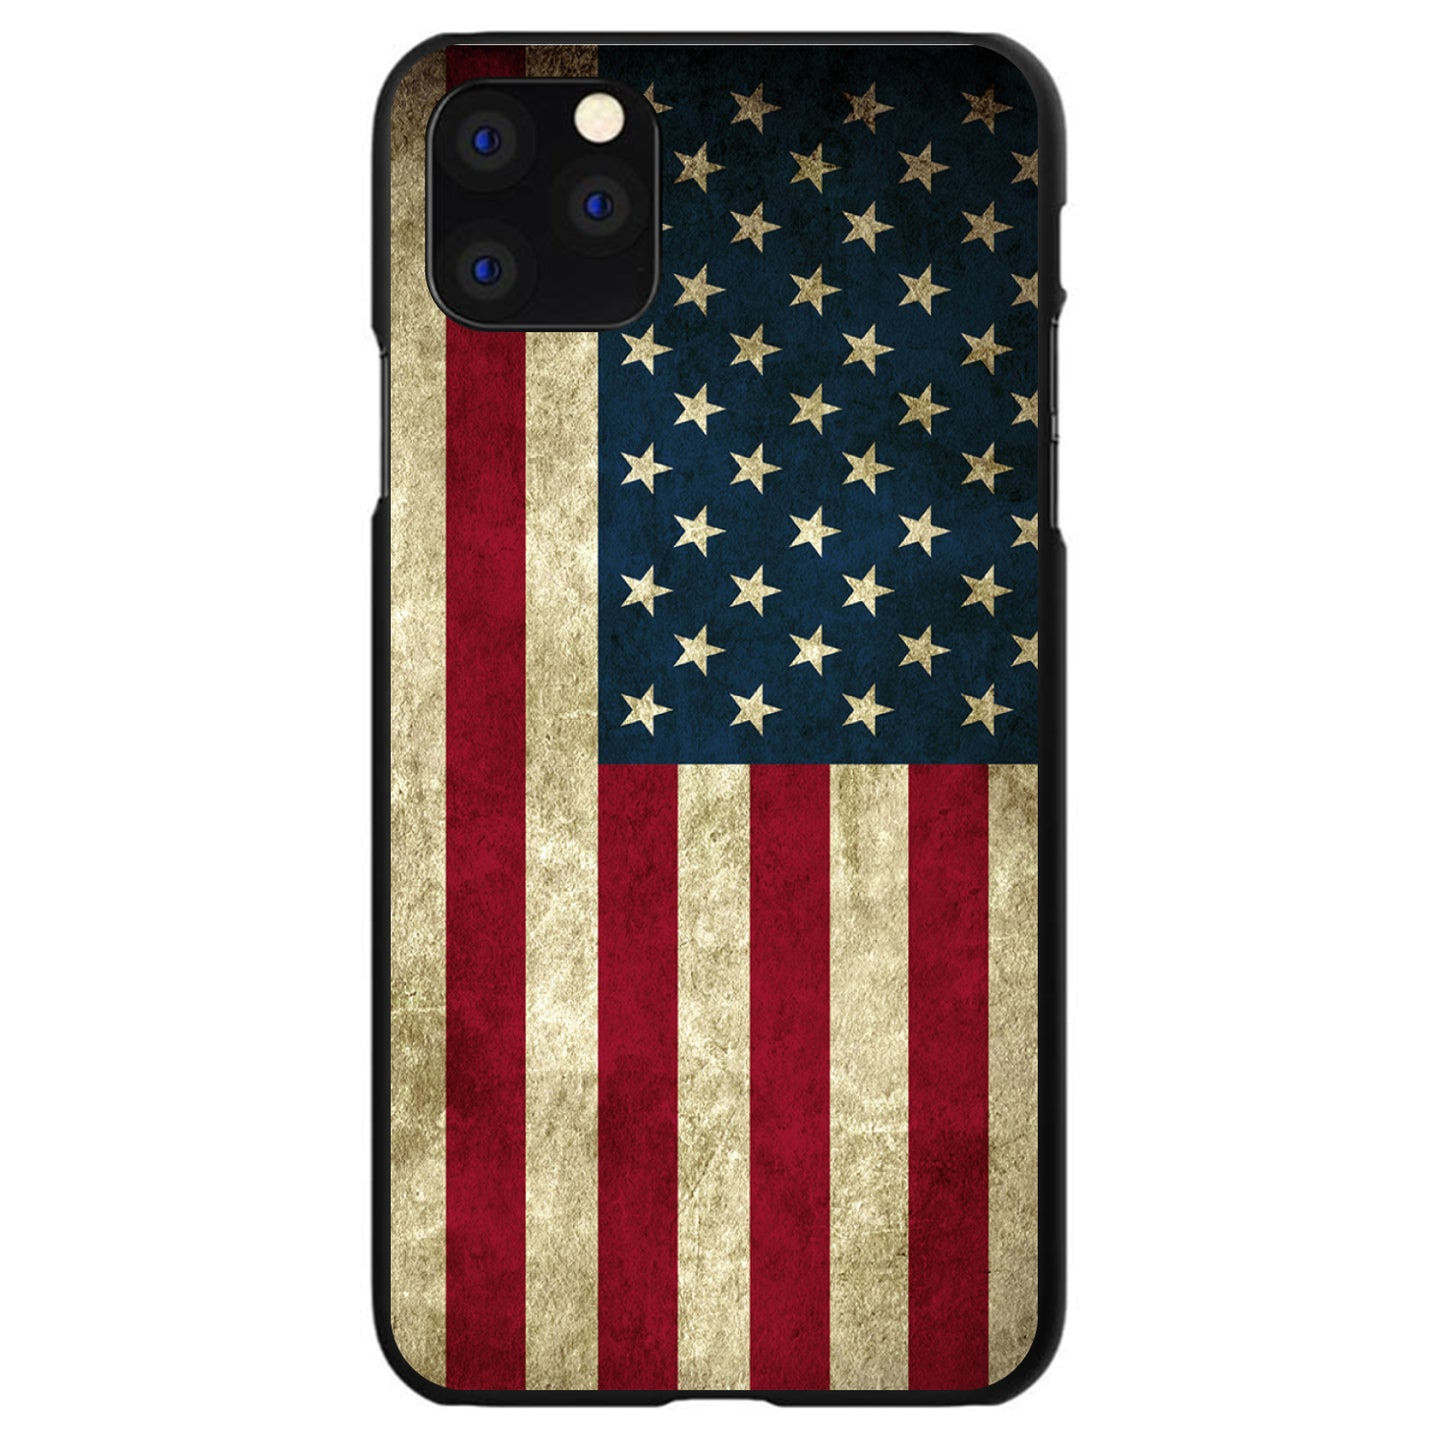 DistinctInk® Hard Plastic Snap-On Case for Apple iPhone - Red White Blue United States Flag Old